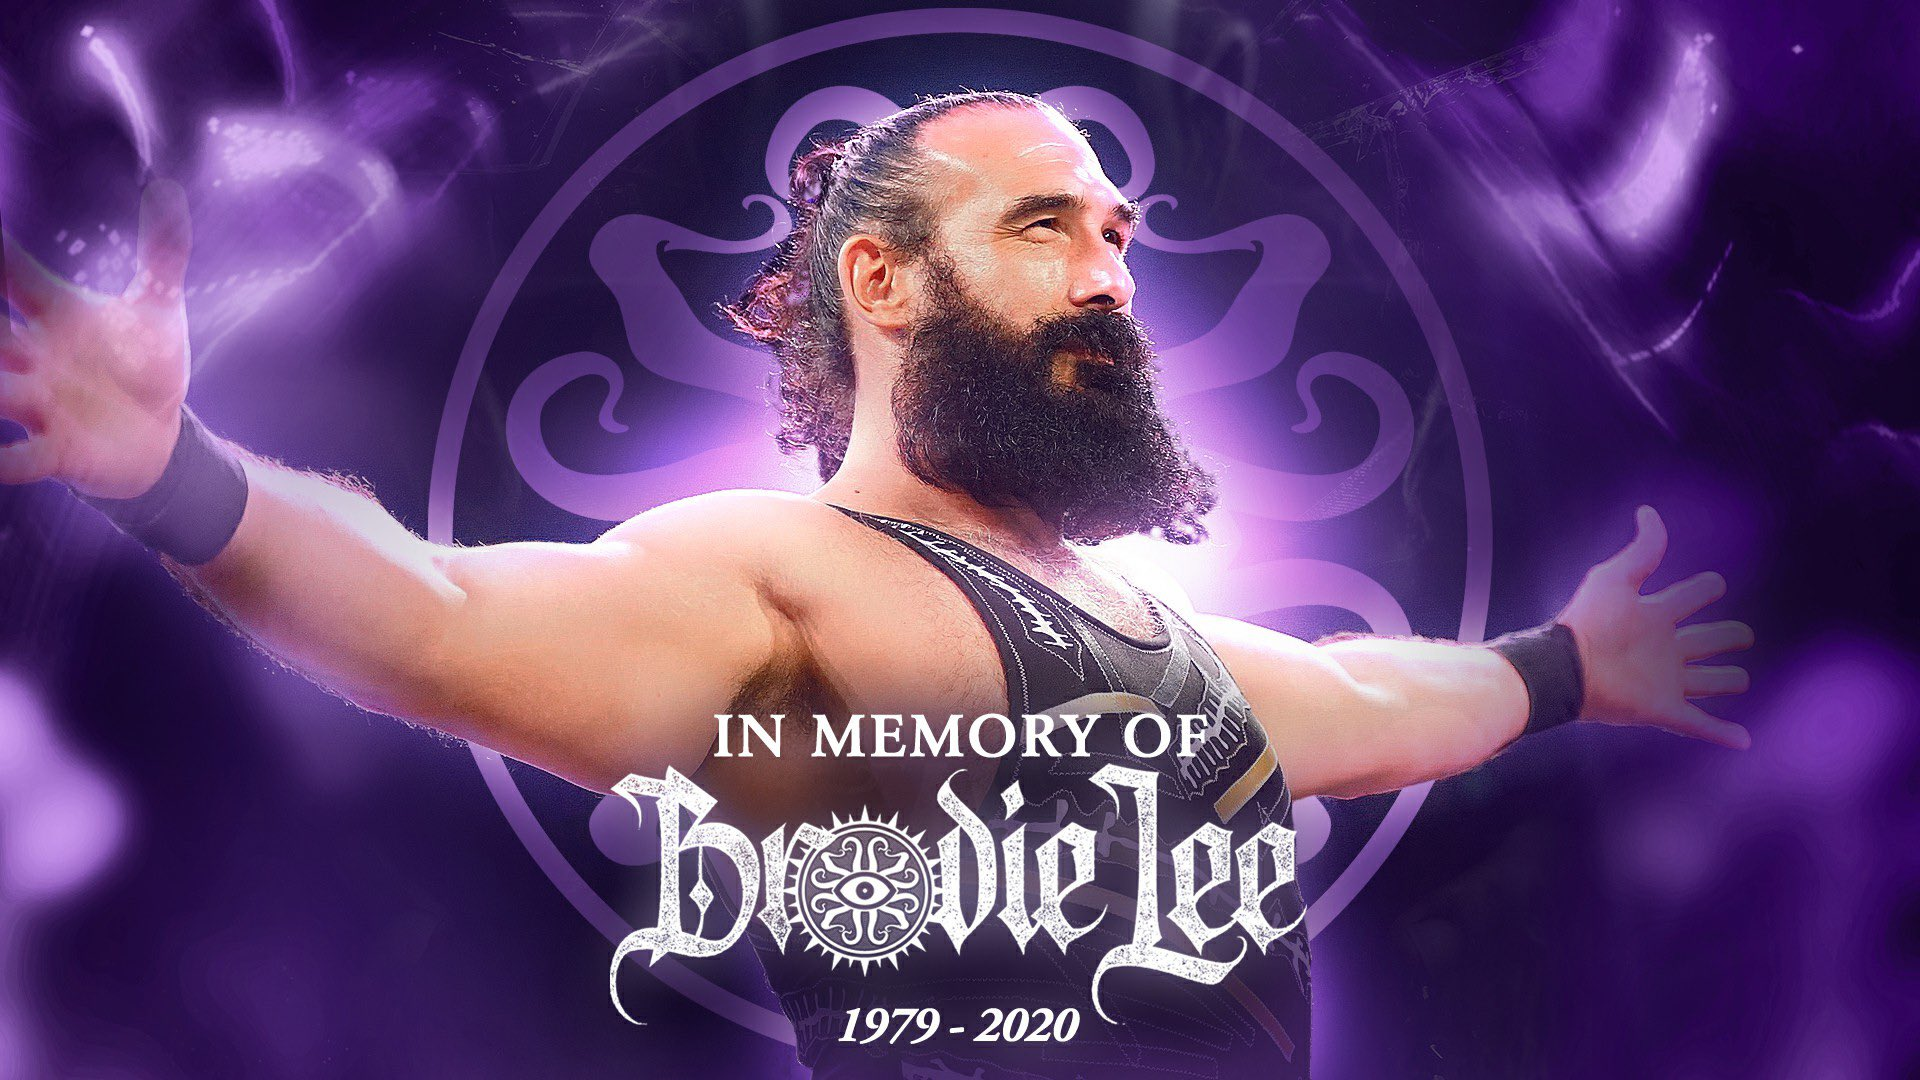 Mr. Brodie Lee – A Tribute to the Exalted One